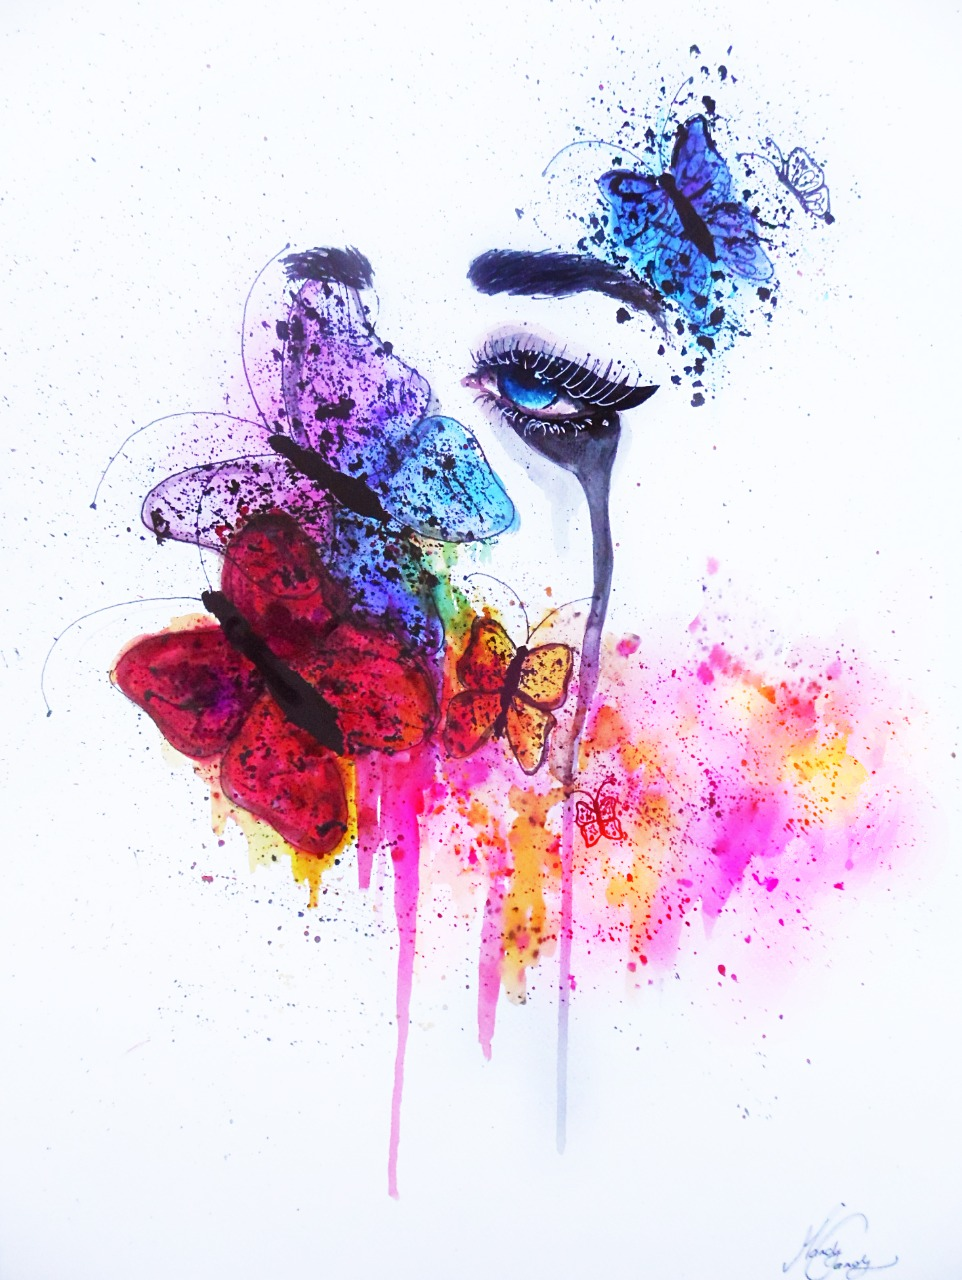 16-Andrea-Wéber-aka-Mandy-Candy-Paintings-A-Mirror-to-the-Artist-s-Emotions-www-designstack-co